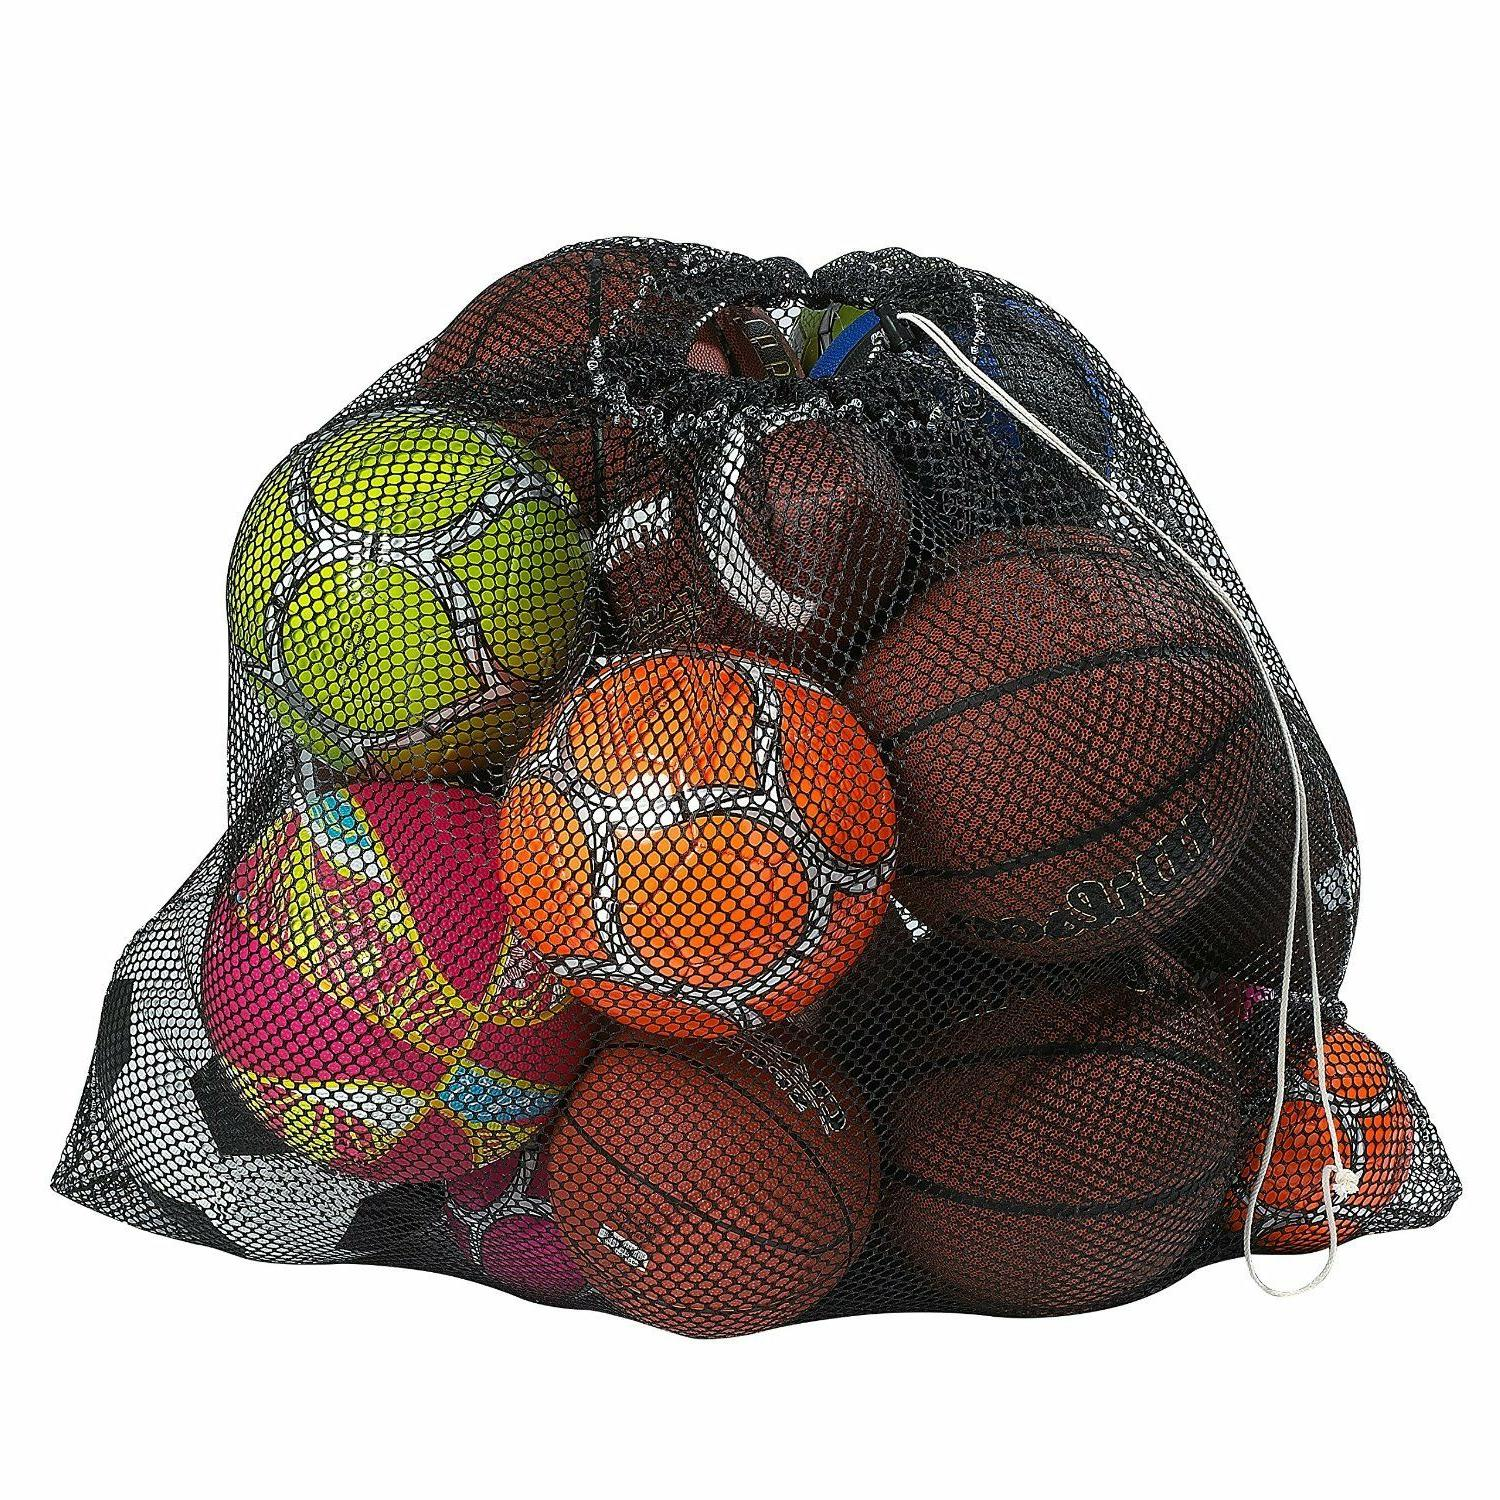 mesh equipment bag keep your sporting gear